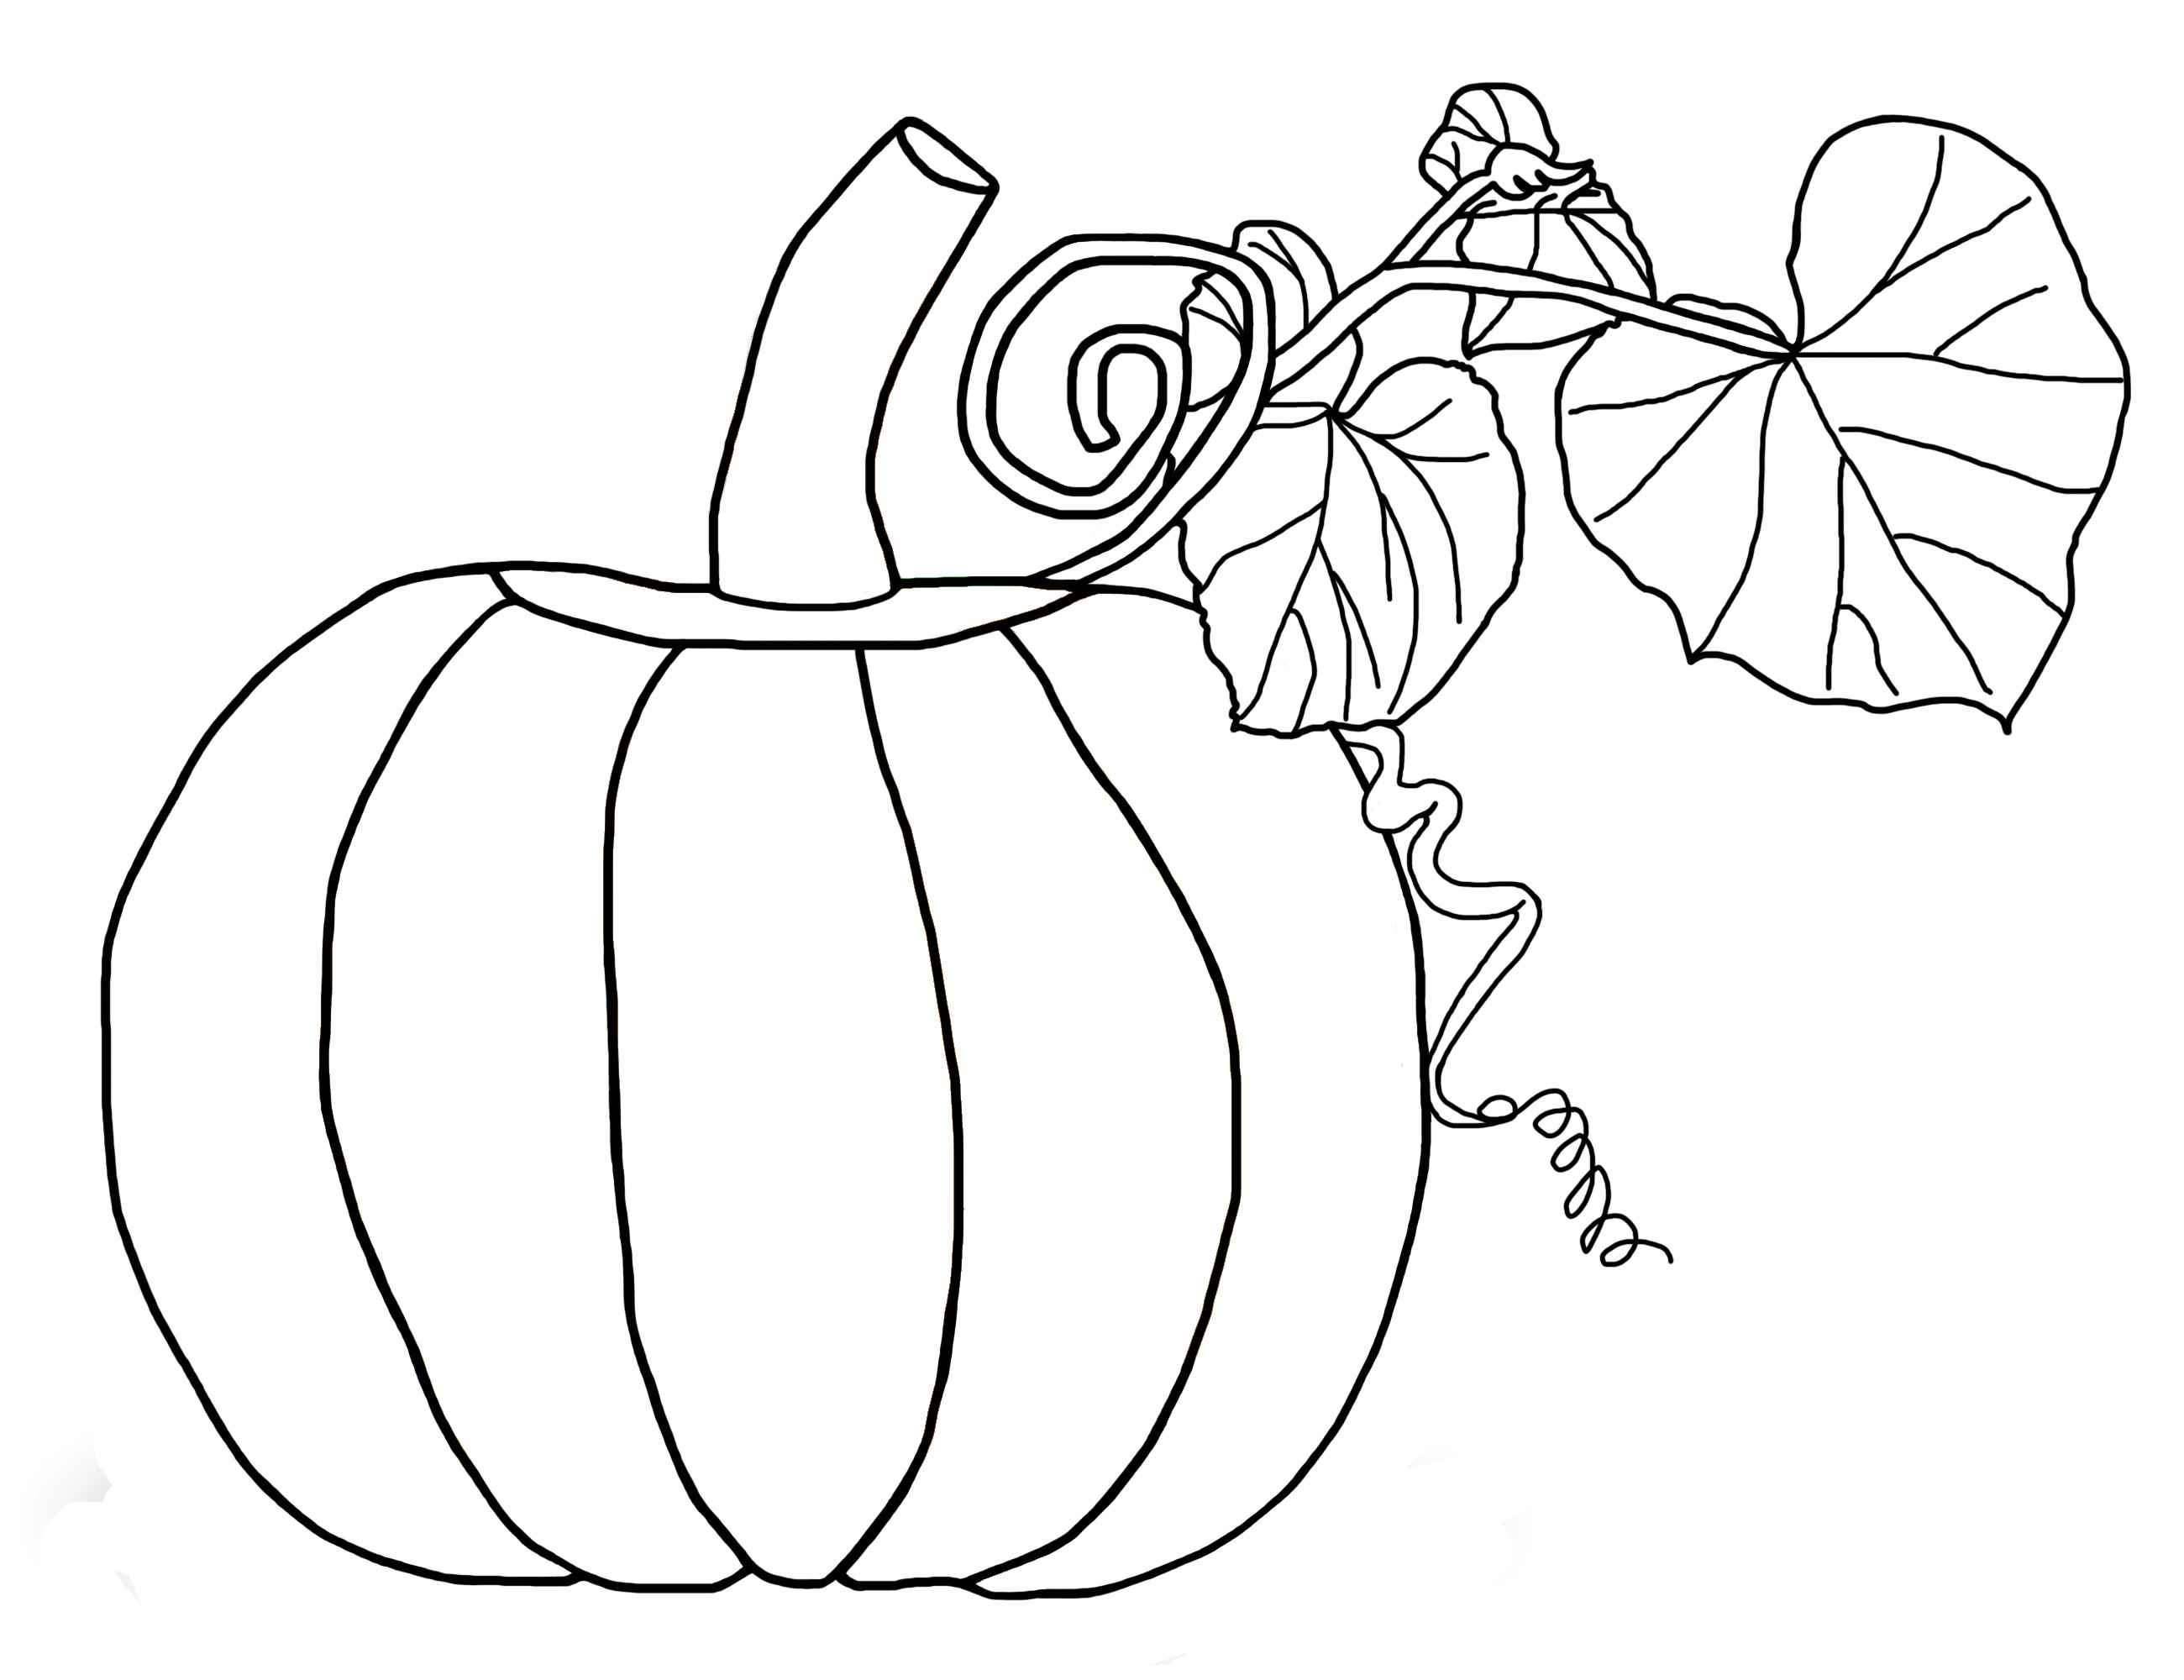 A pumpkin with vines and leaves